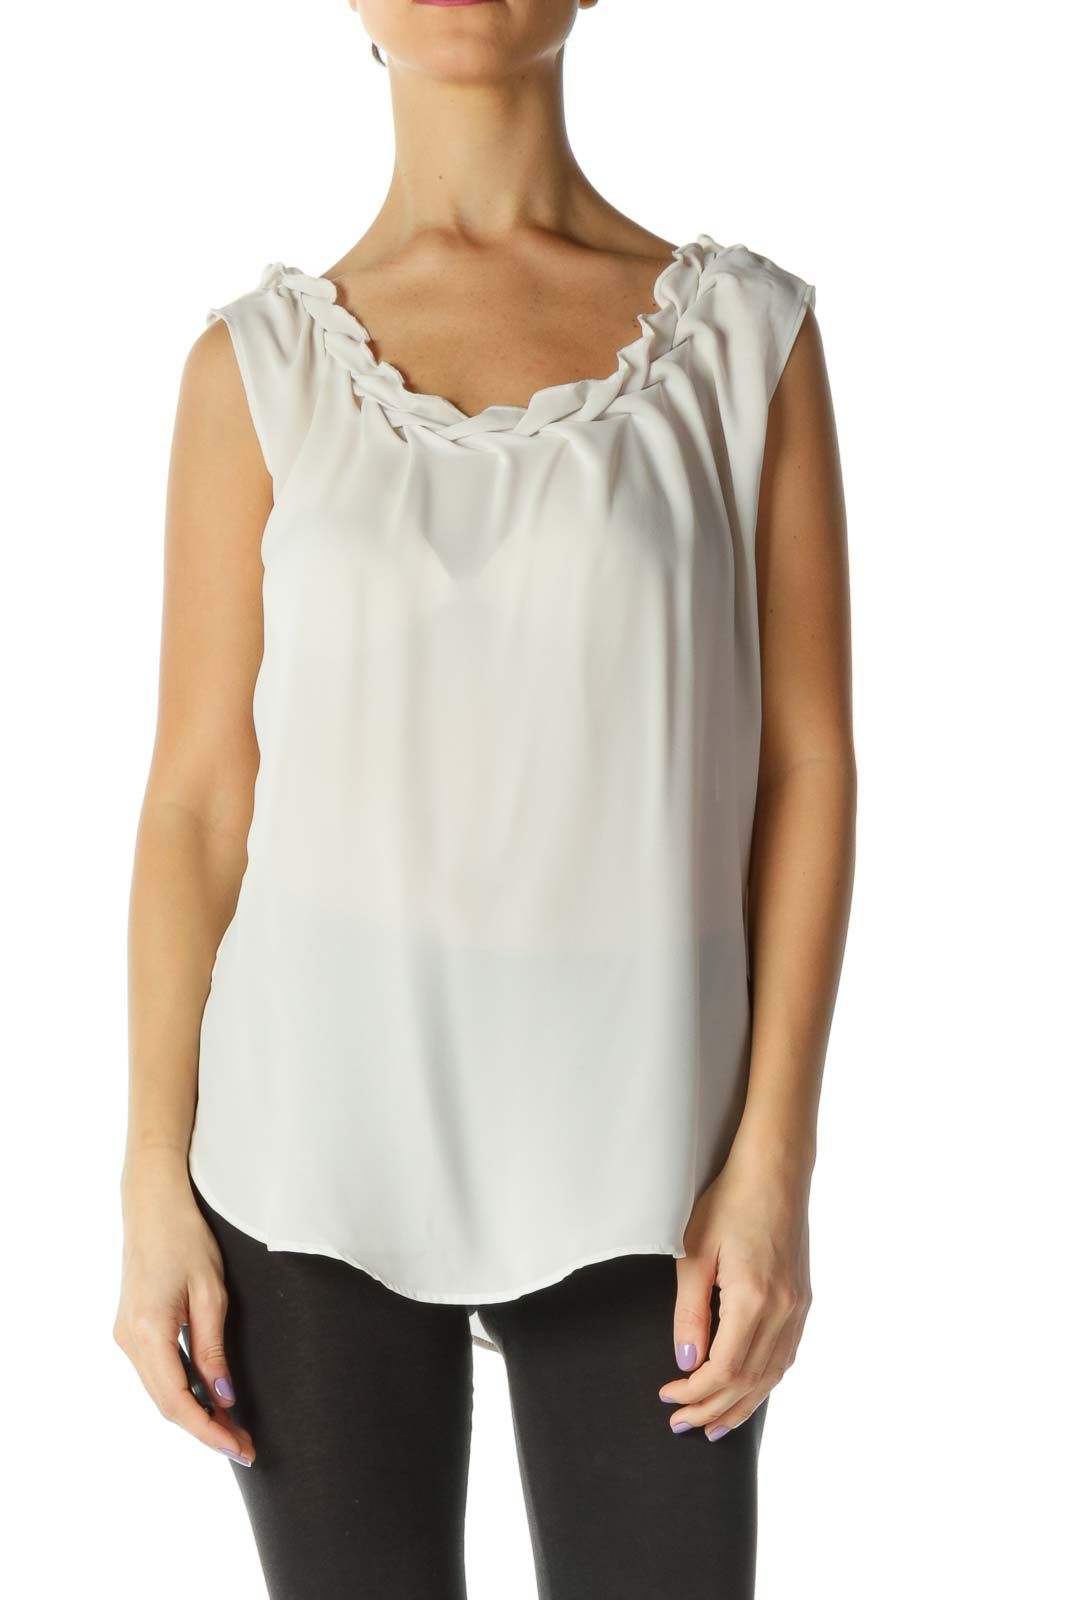 Beige Solid Casual Blouse Front